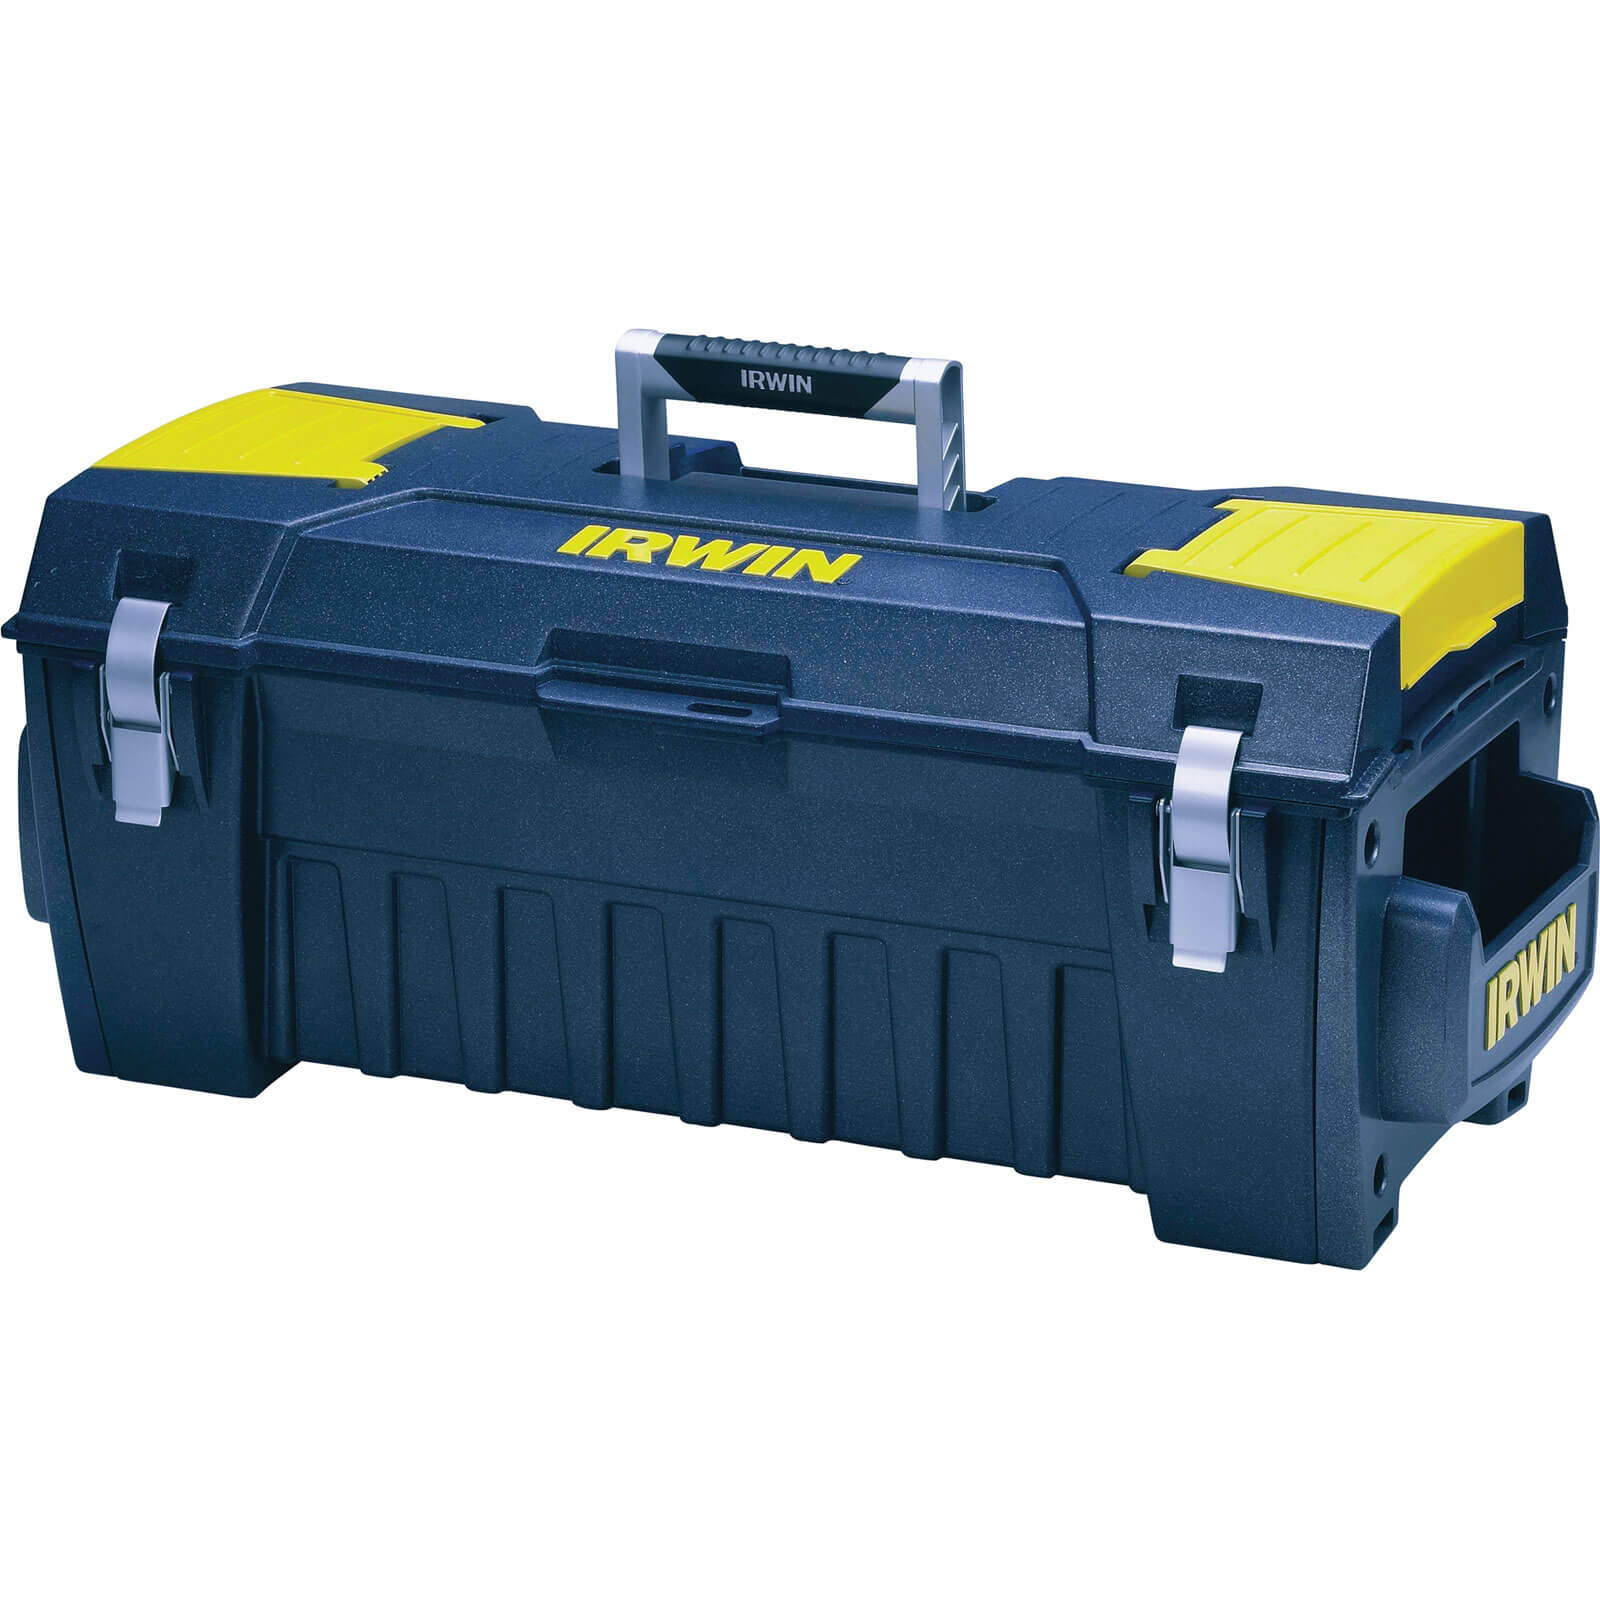 Structural Engineering Tool Box : Irwin pro heavy duty structural foam tool box